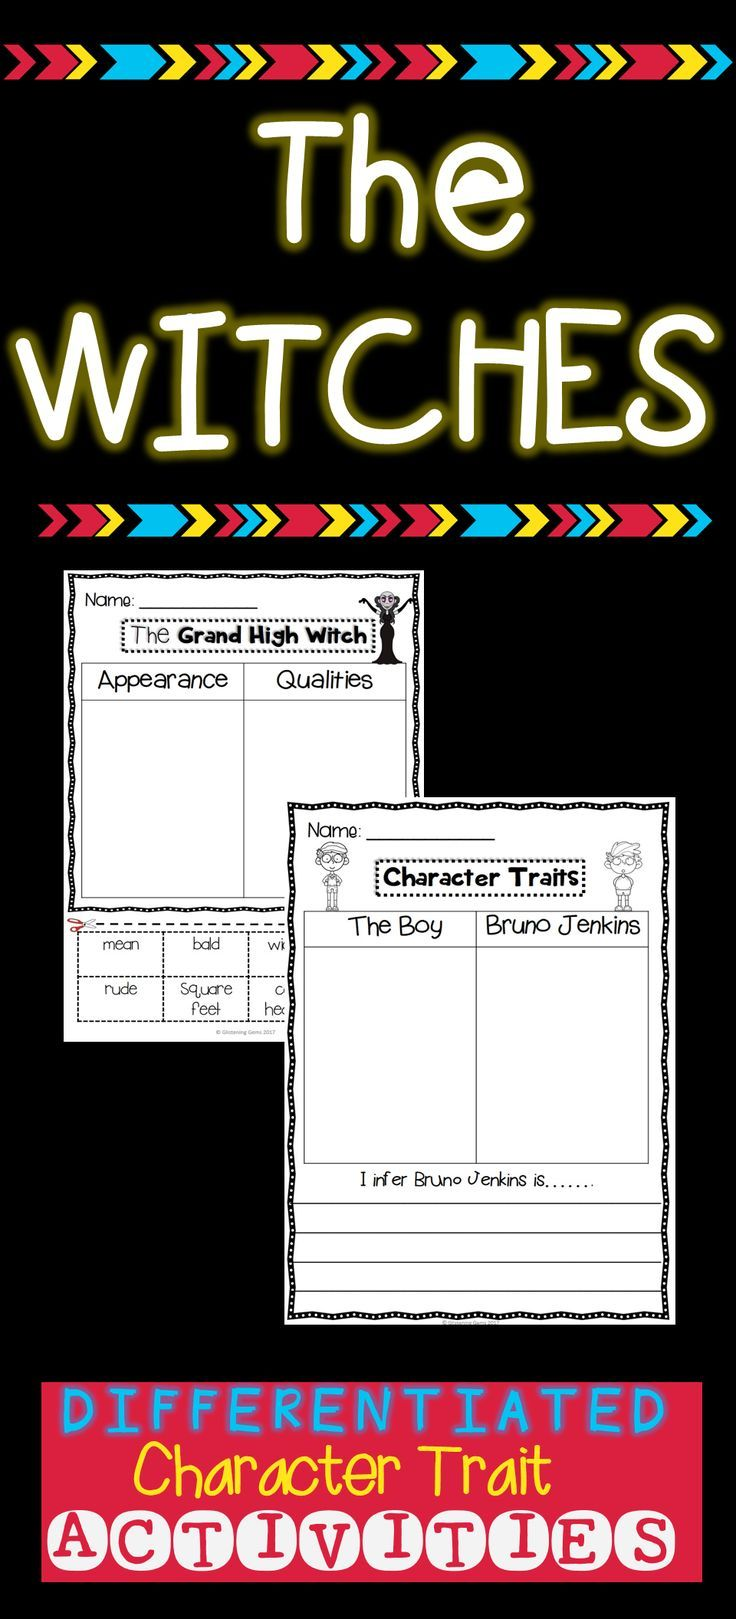 Workbooks the twits worksheets ks2 : 20 best The Witches images on Pinterest | The witches roald dahl ...